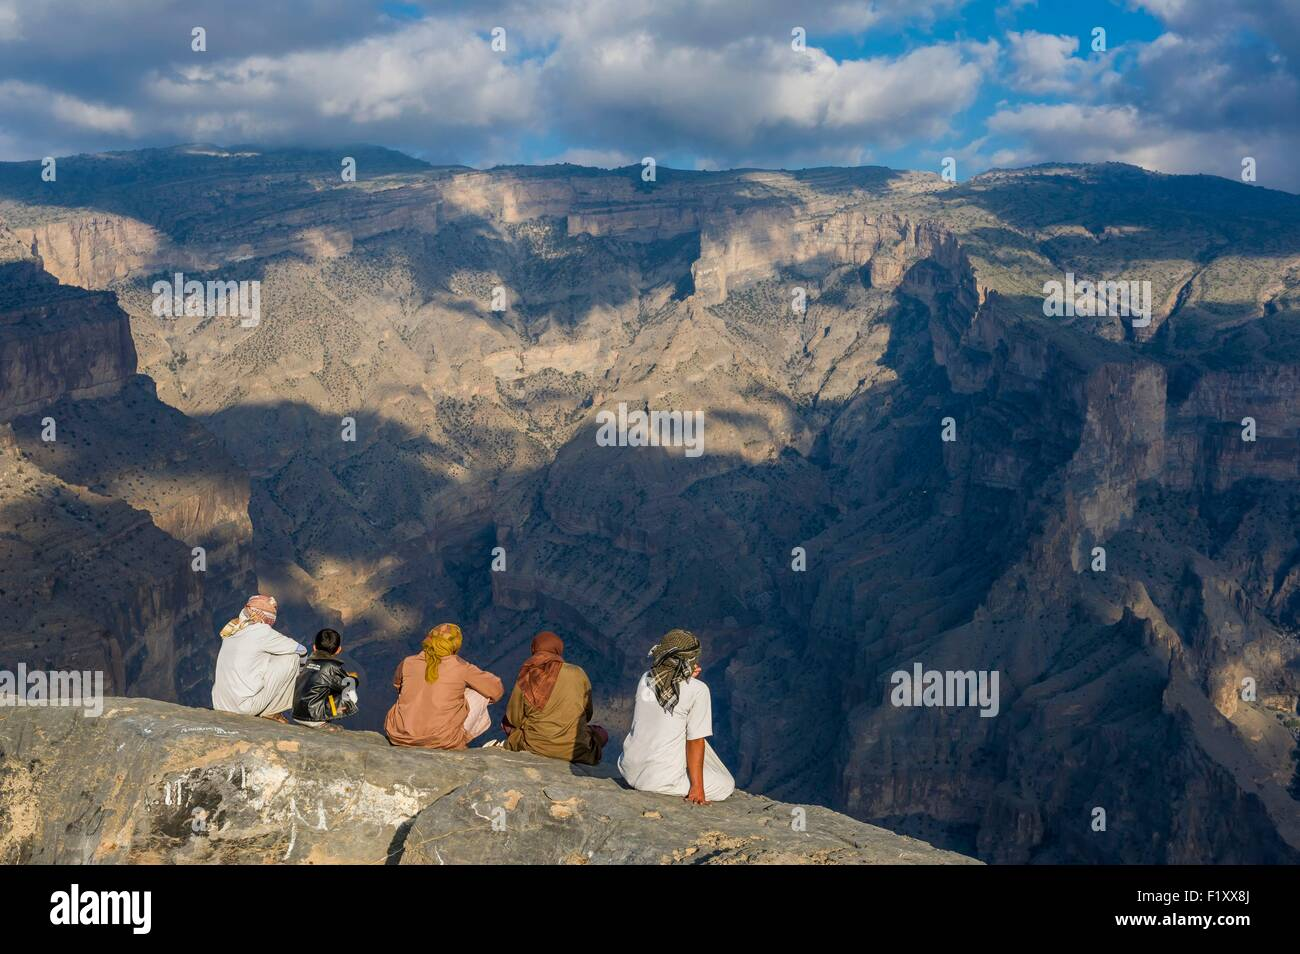 Oman, Djebel Shams, Oman Grand Canyon Immagini Stock